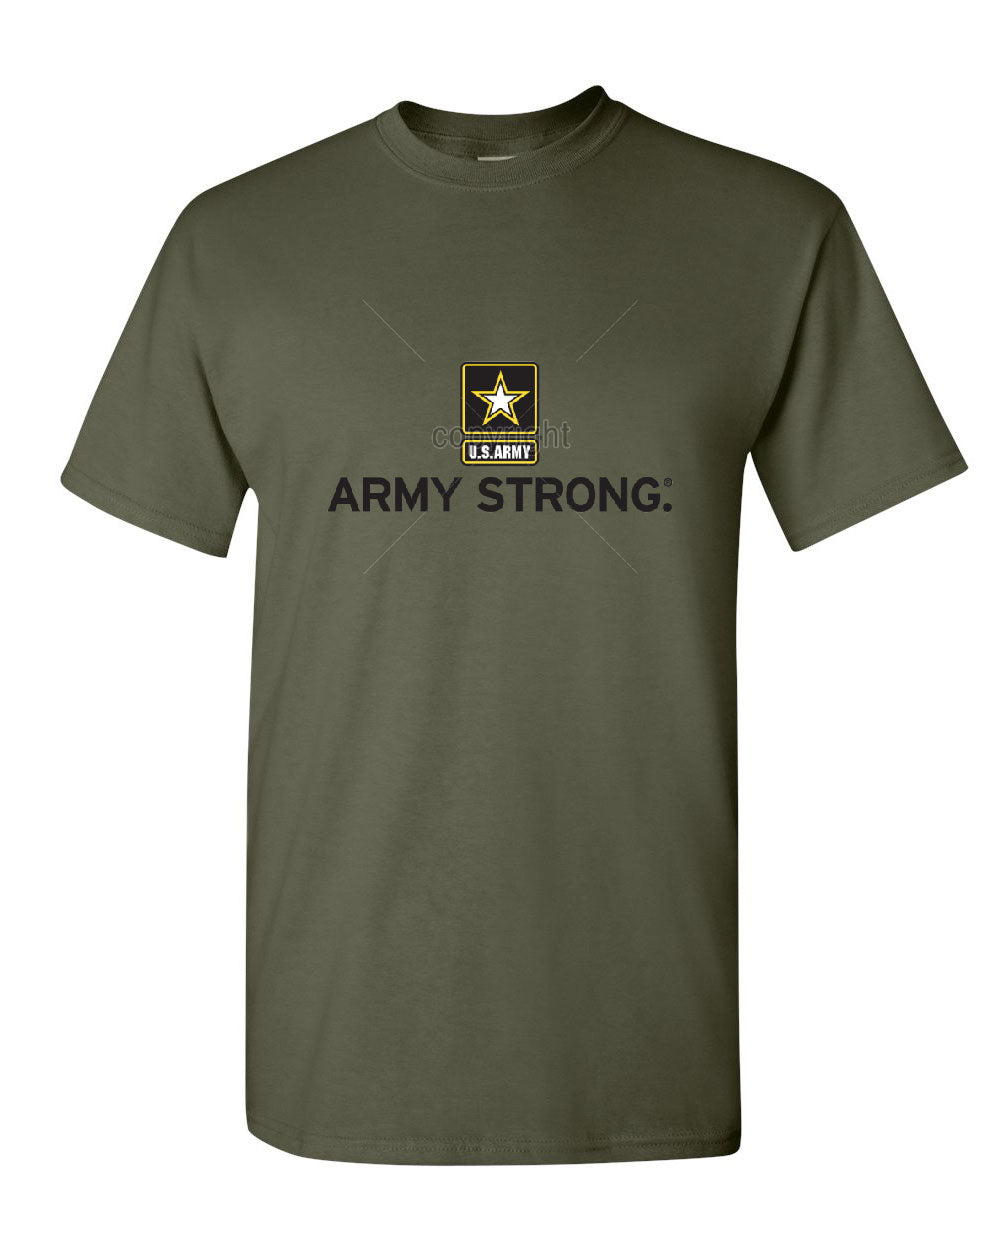 Army strong t shirt united states army military soldier for Military t shirt companies